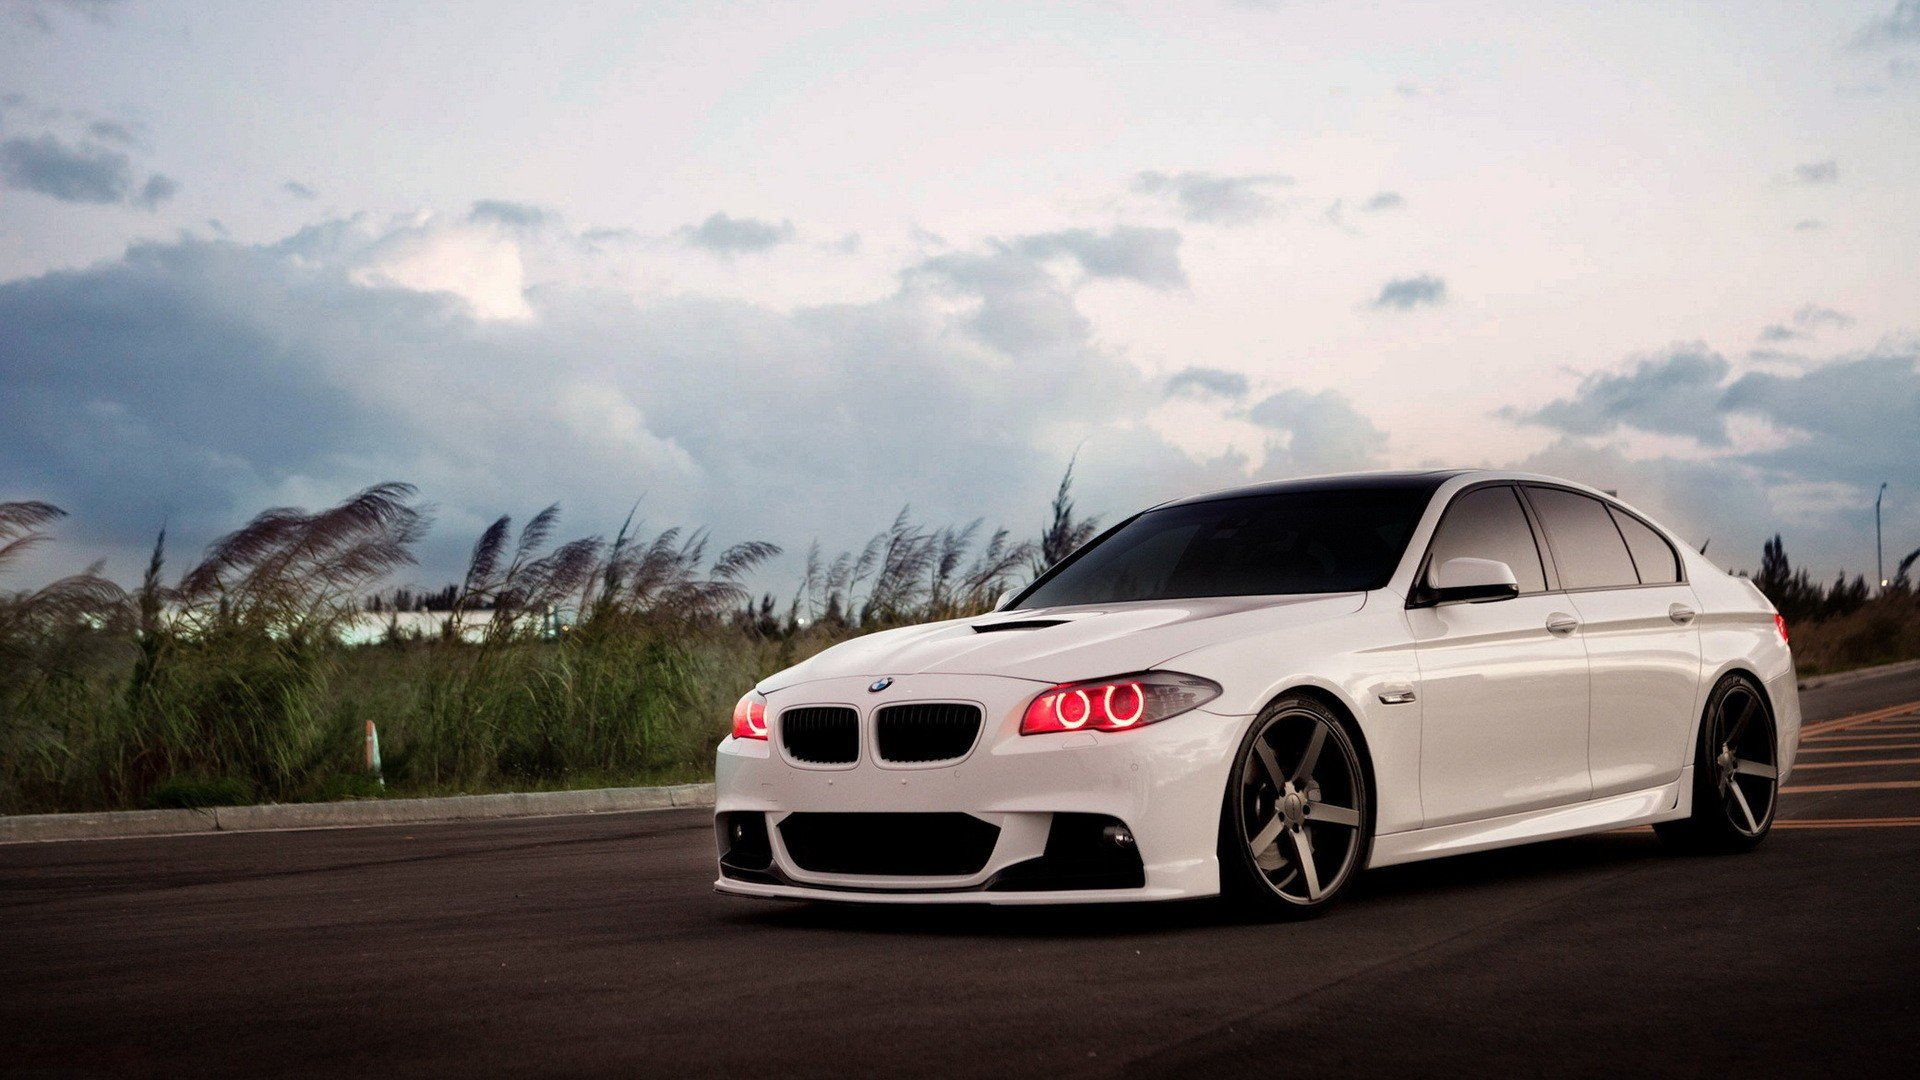 white tuning bmw 5 series wallpaper 1920x1080 299403 wallpaperup. Black Bedroom Furniture Sets. Home Design Ideas